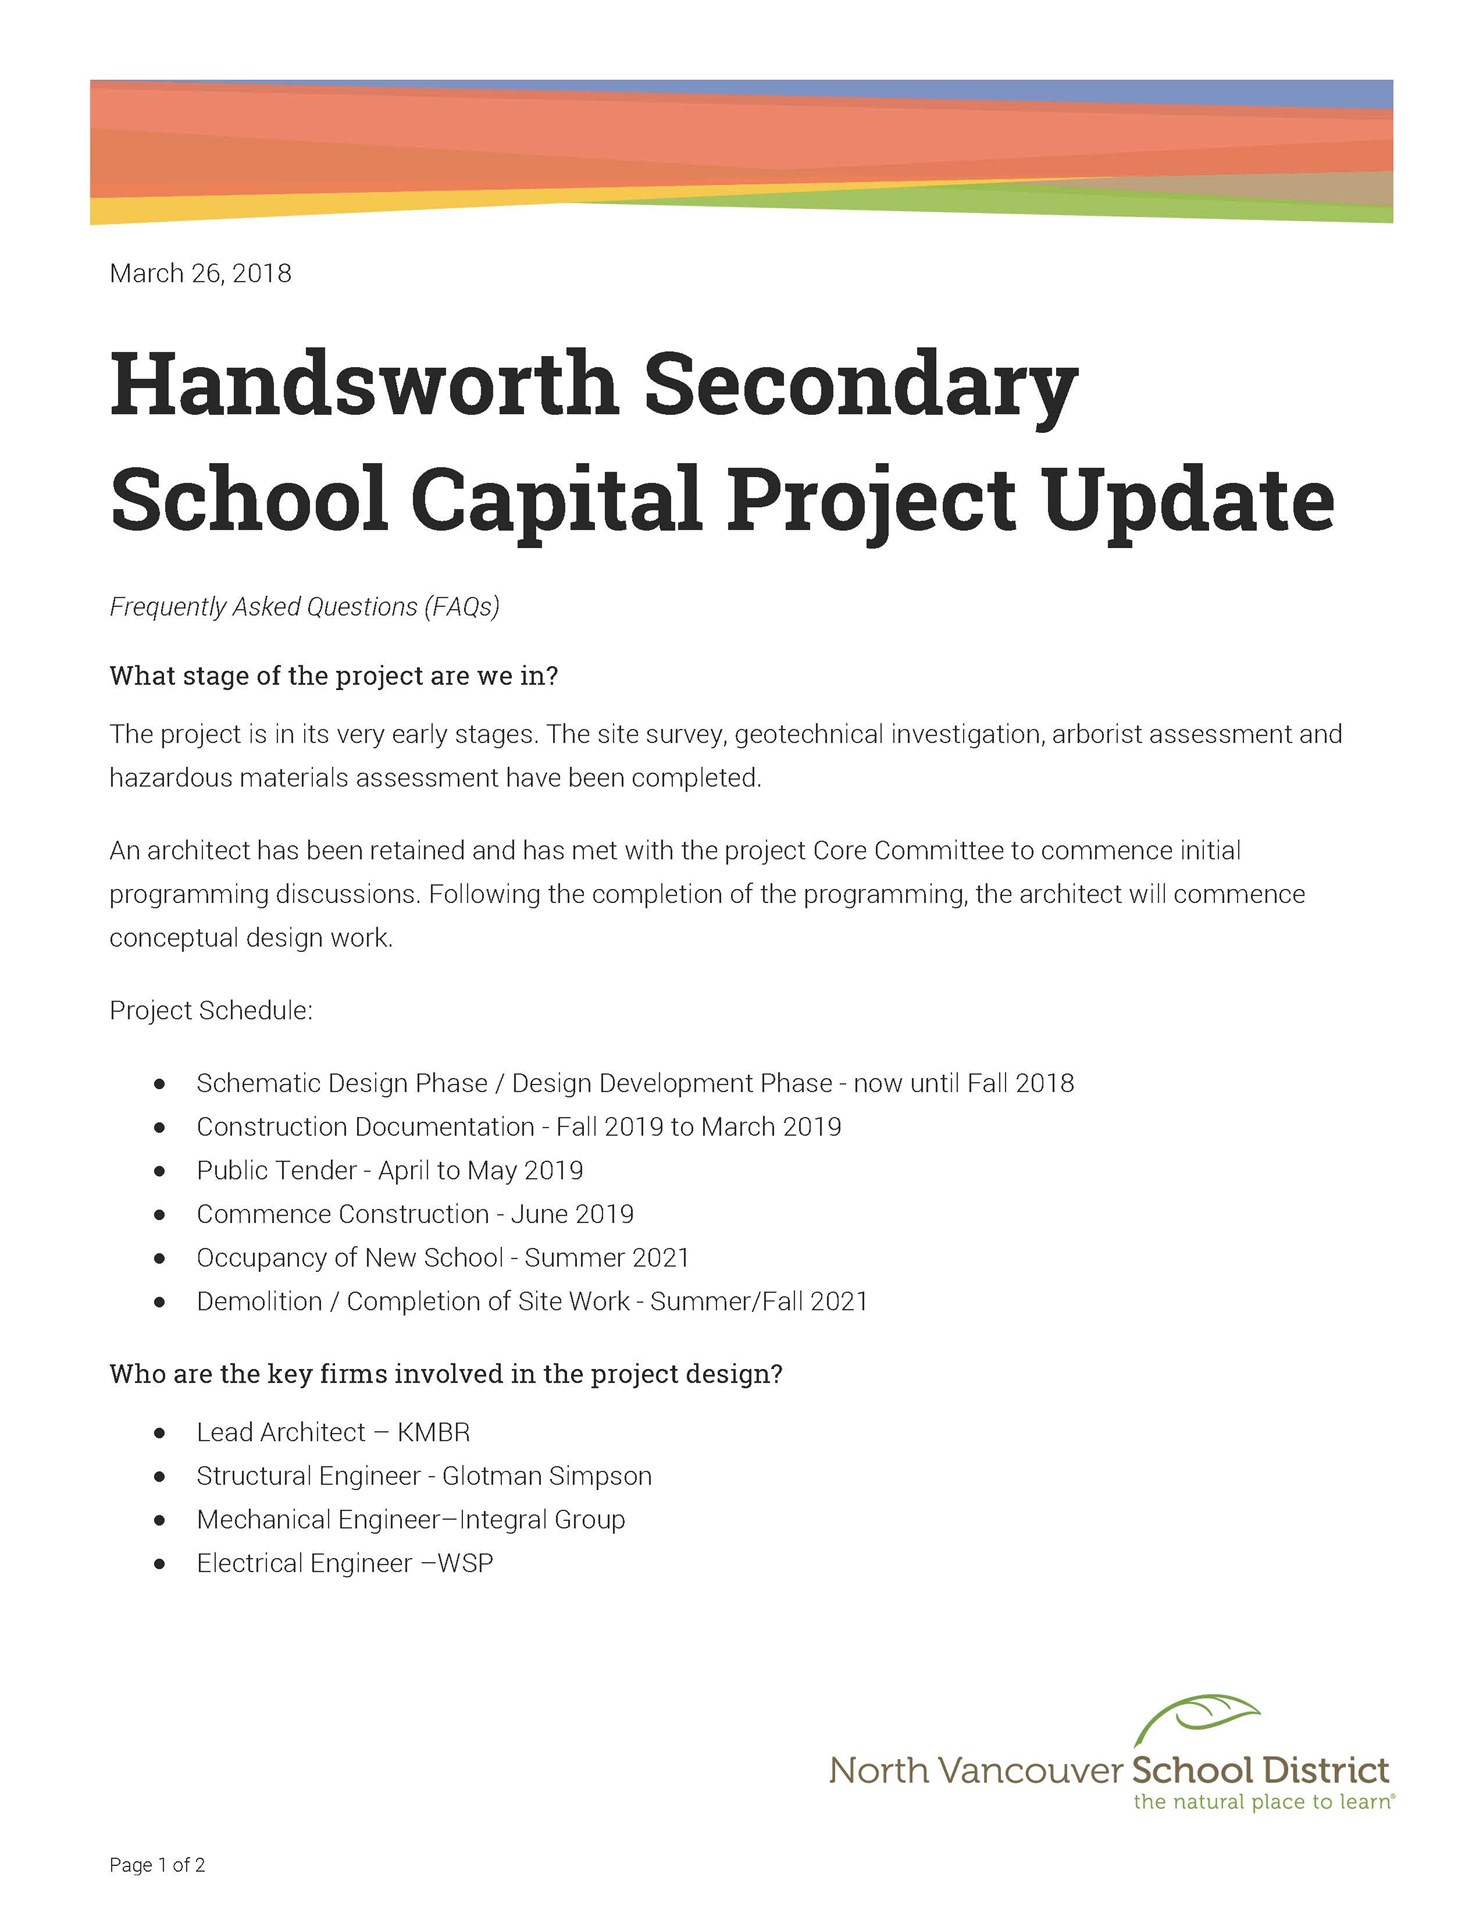 Handsworth Update 03262018_Page_1.jpg